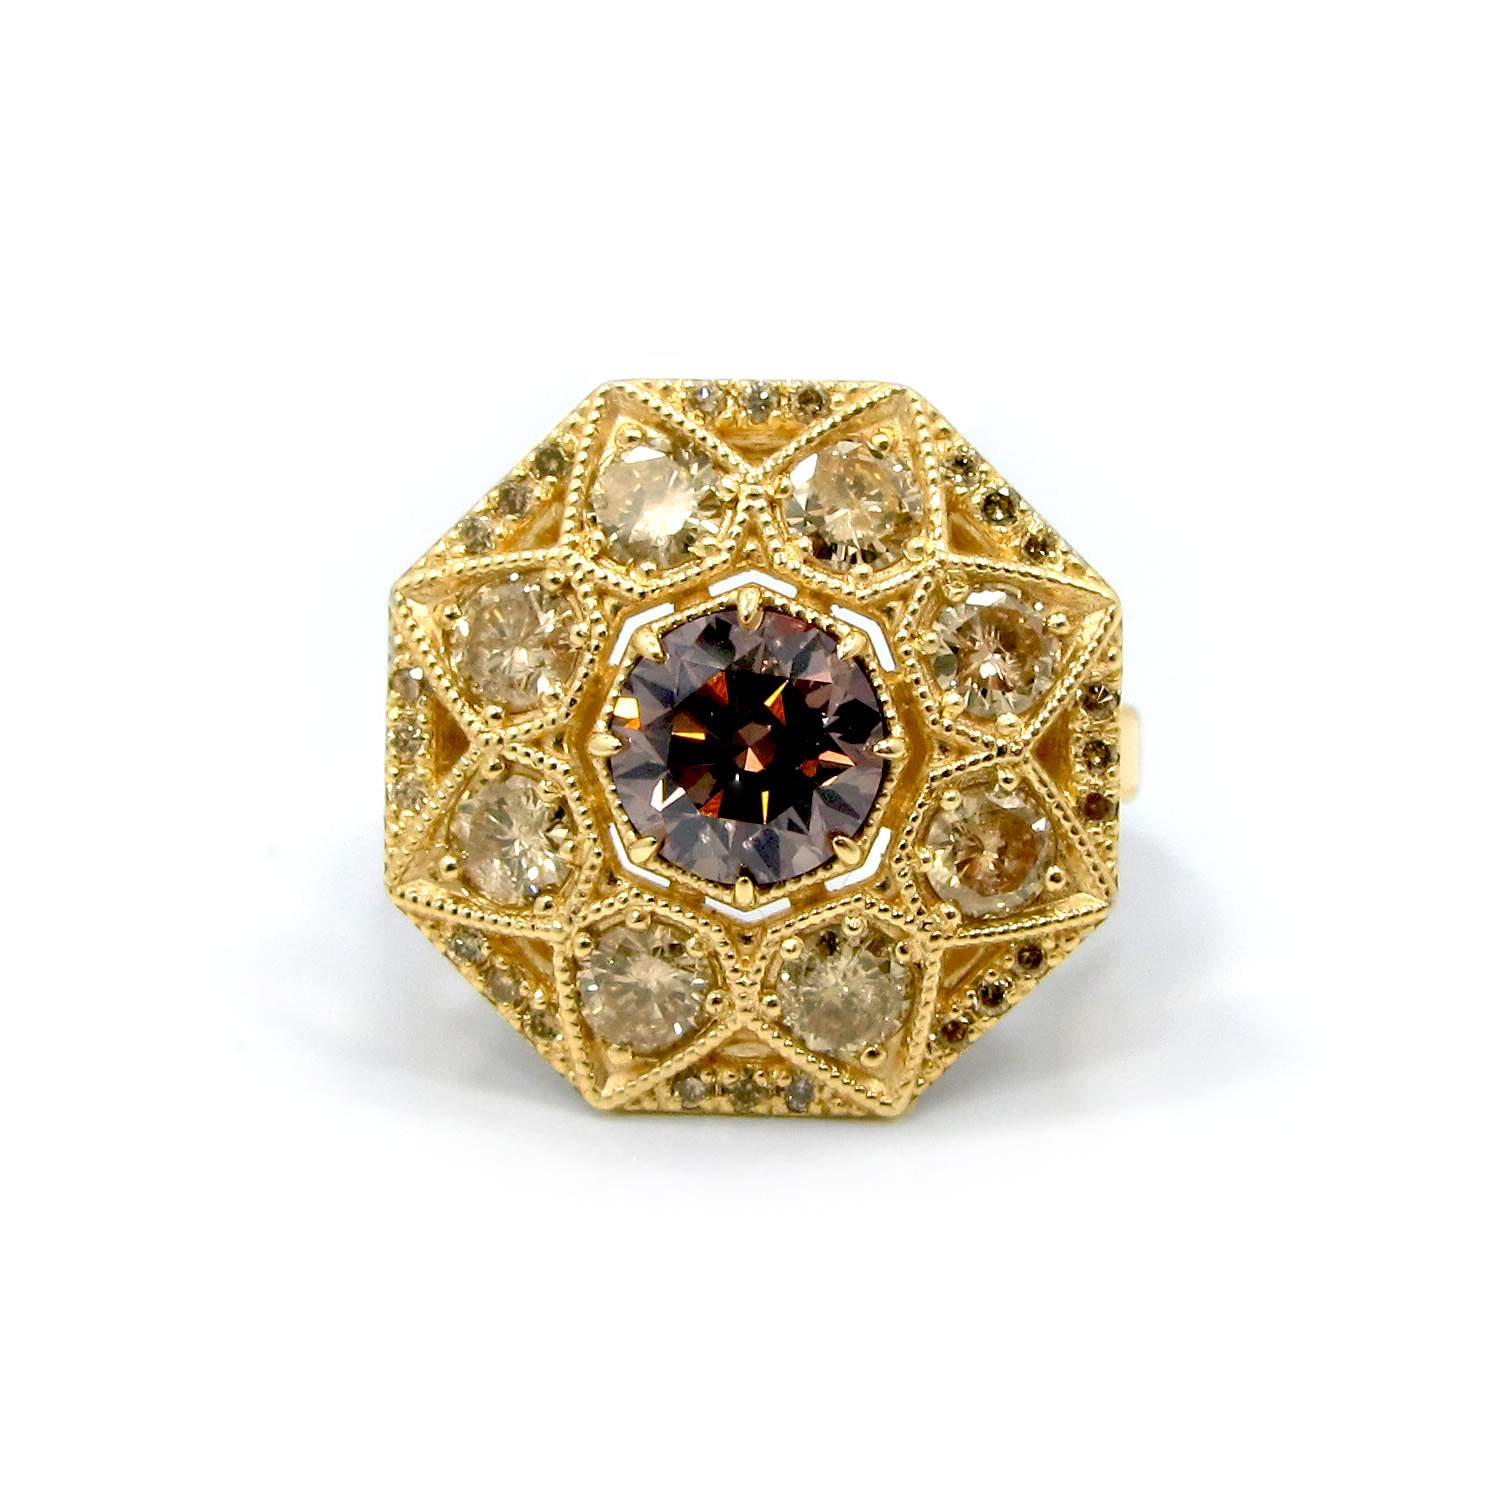 orro henrich rings lily home ring champagne jewellery denzel red diamonds gold diamond engagement